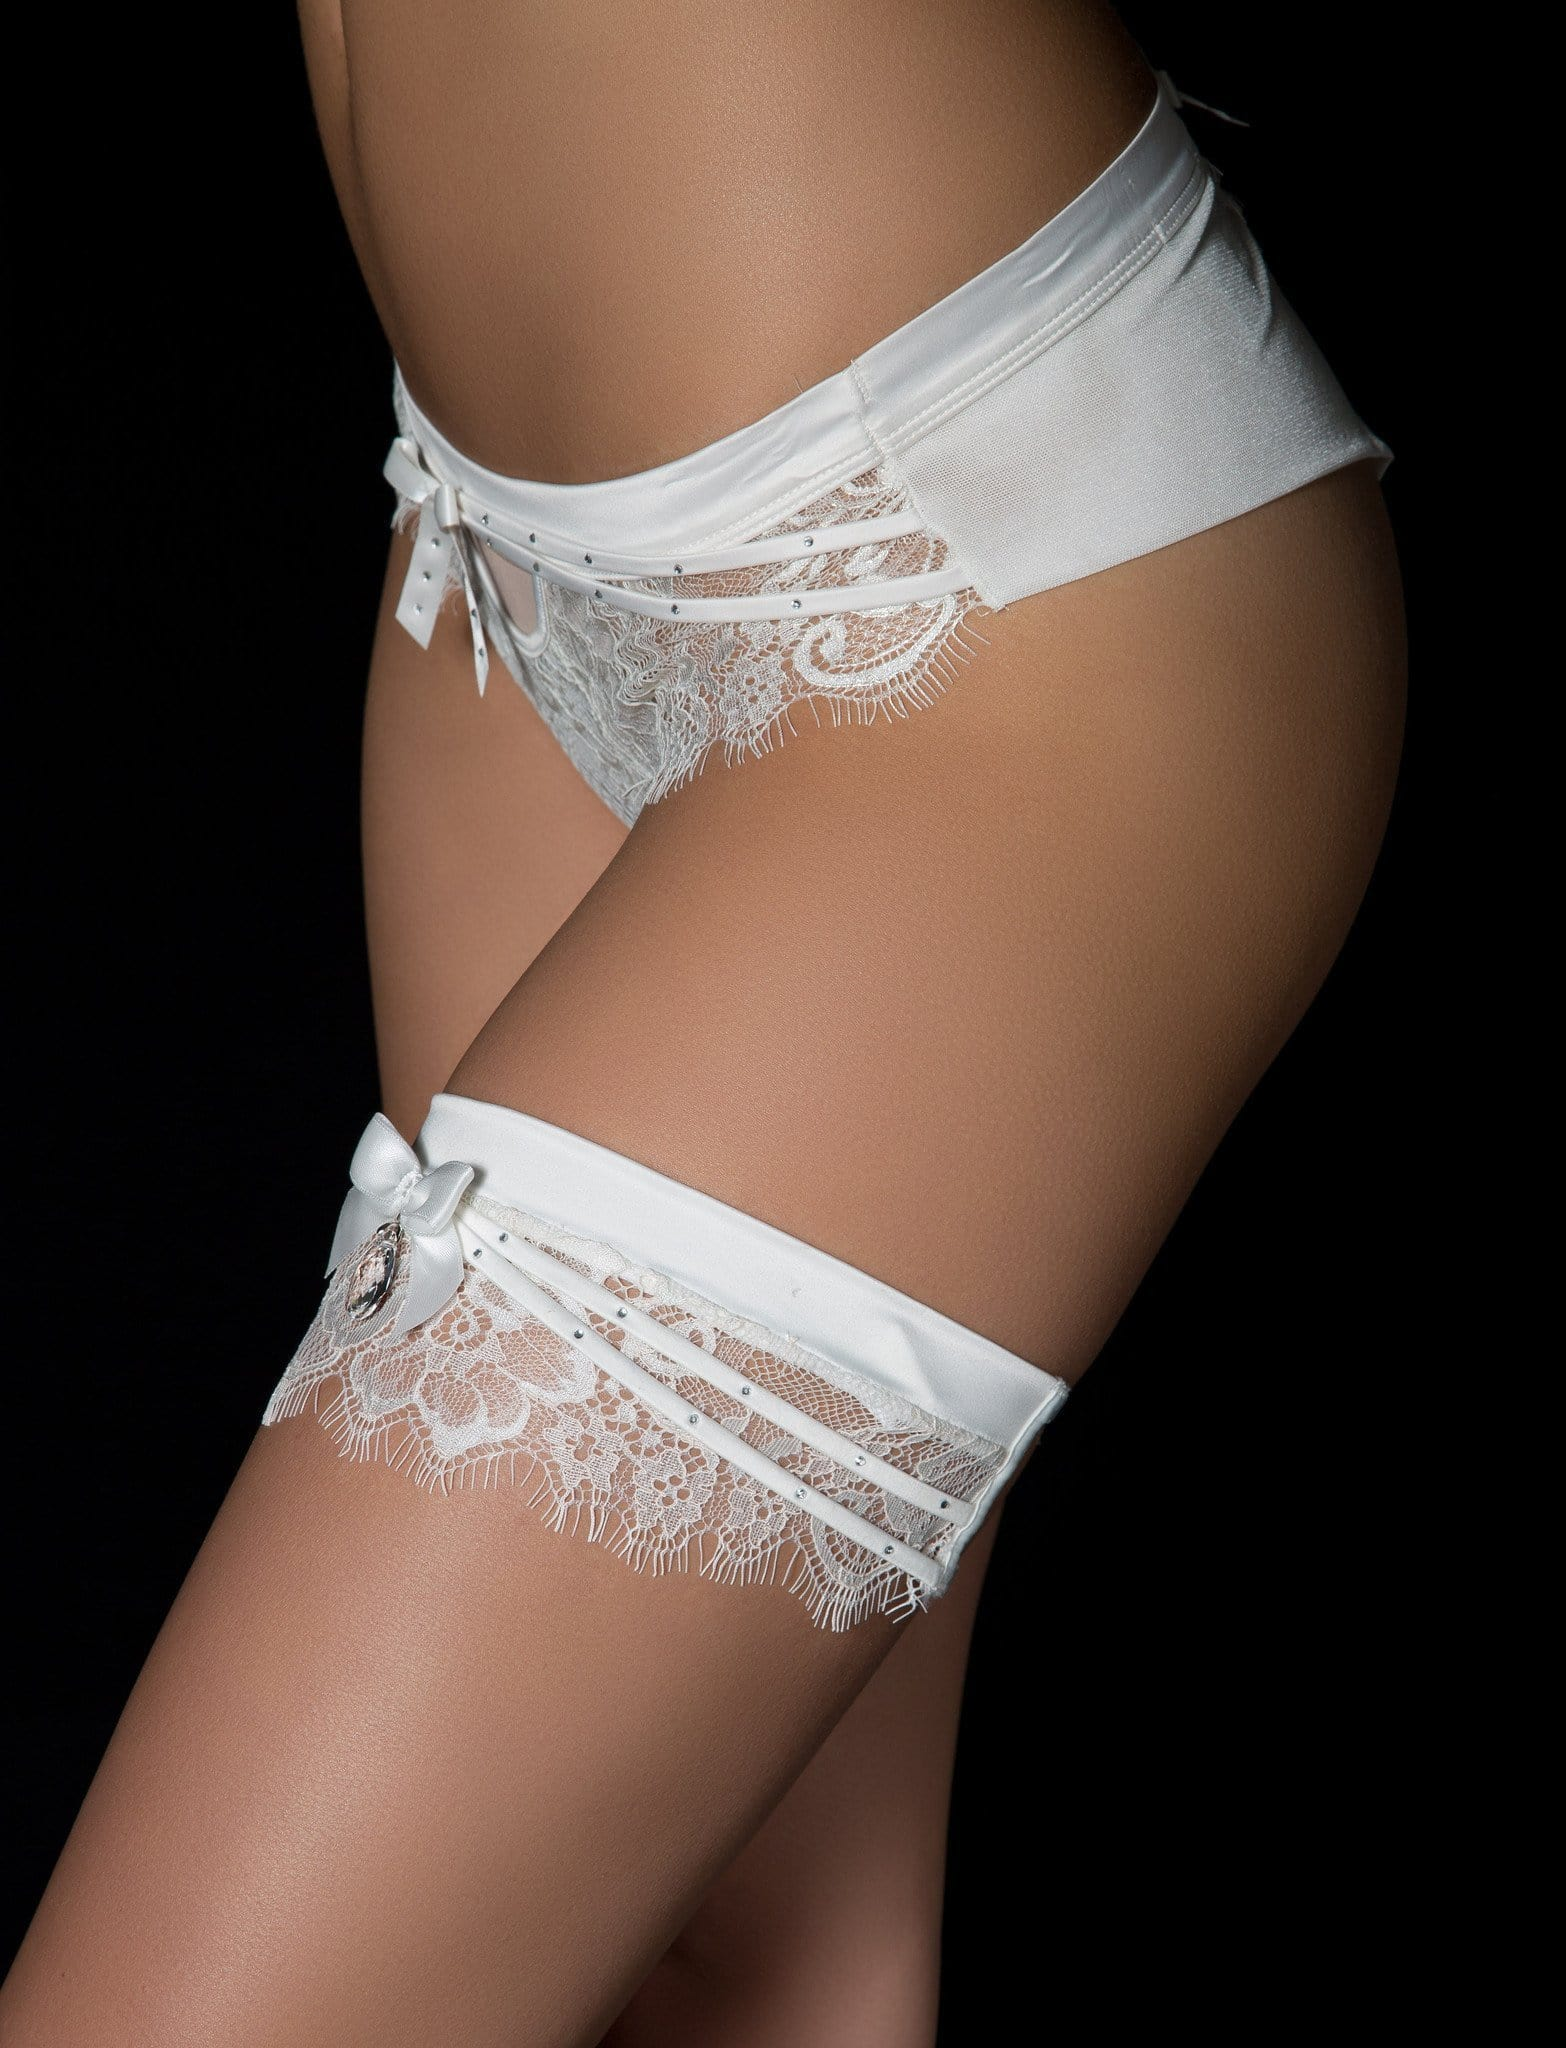 Madame Lace Bridal Garter - Accessories - Honey Birdette USA